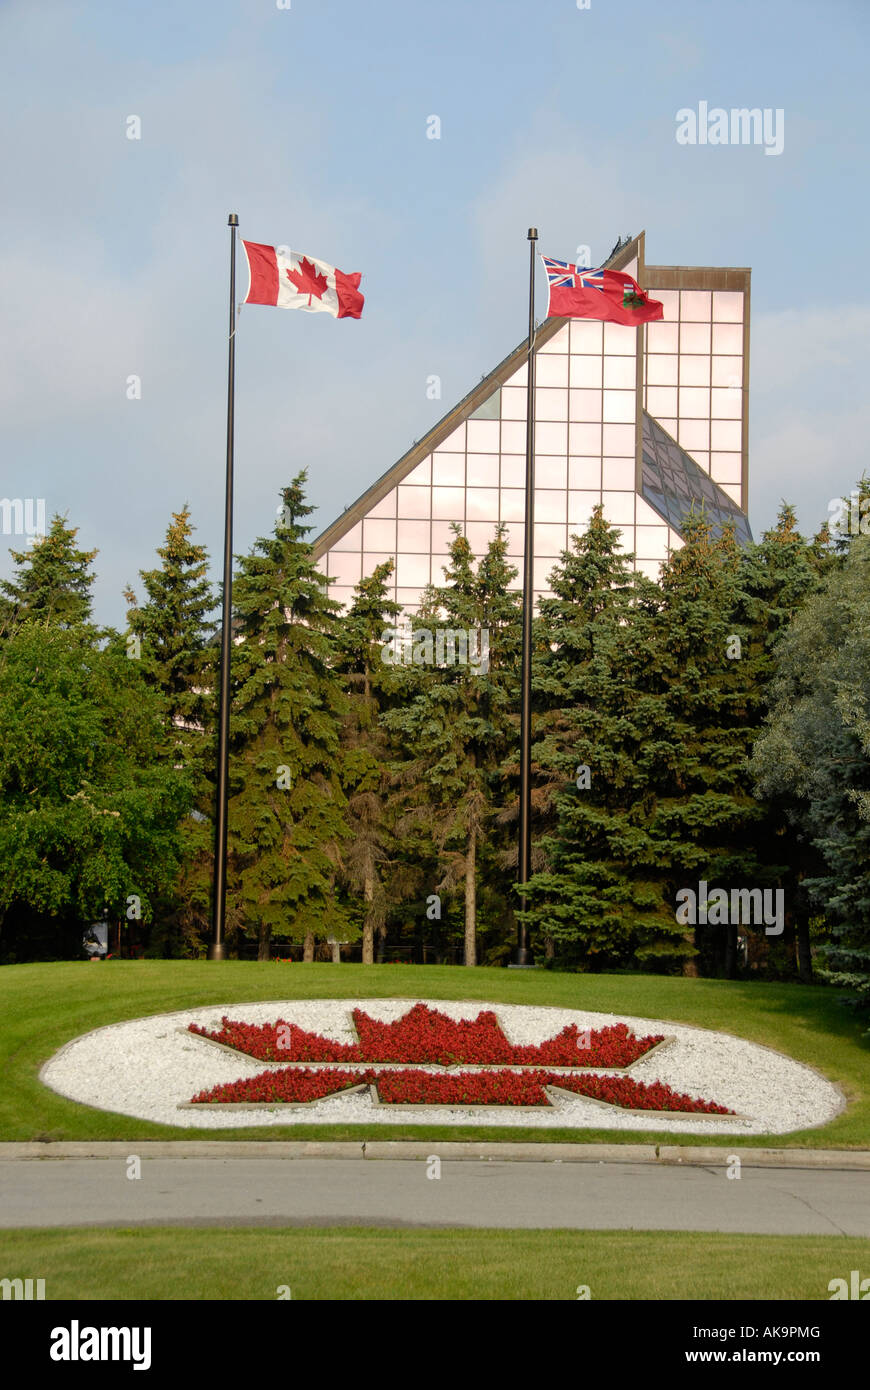 Royal Canadian Mint in Winnipeg Manitoba Canada designed by